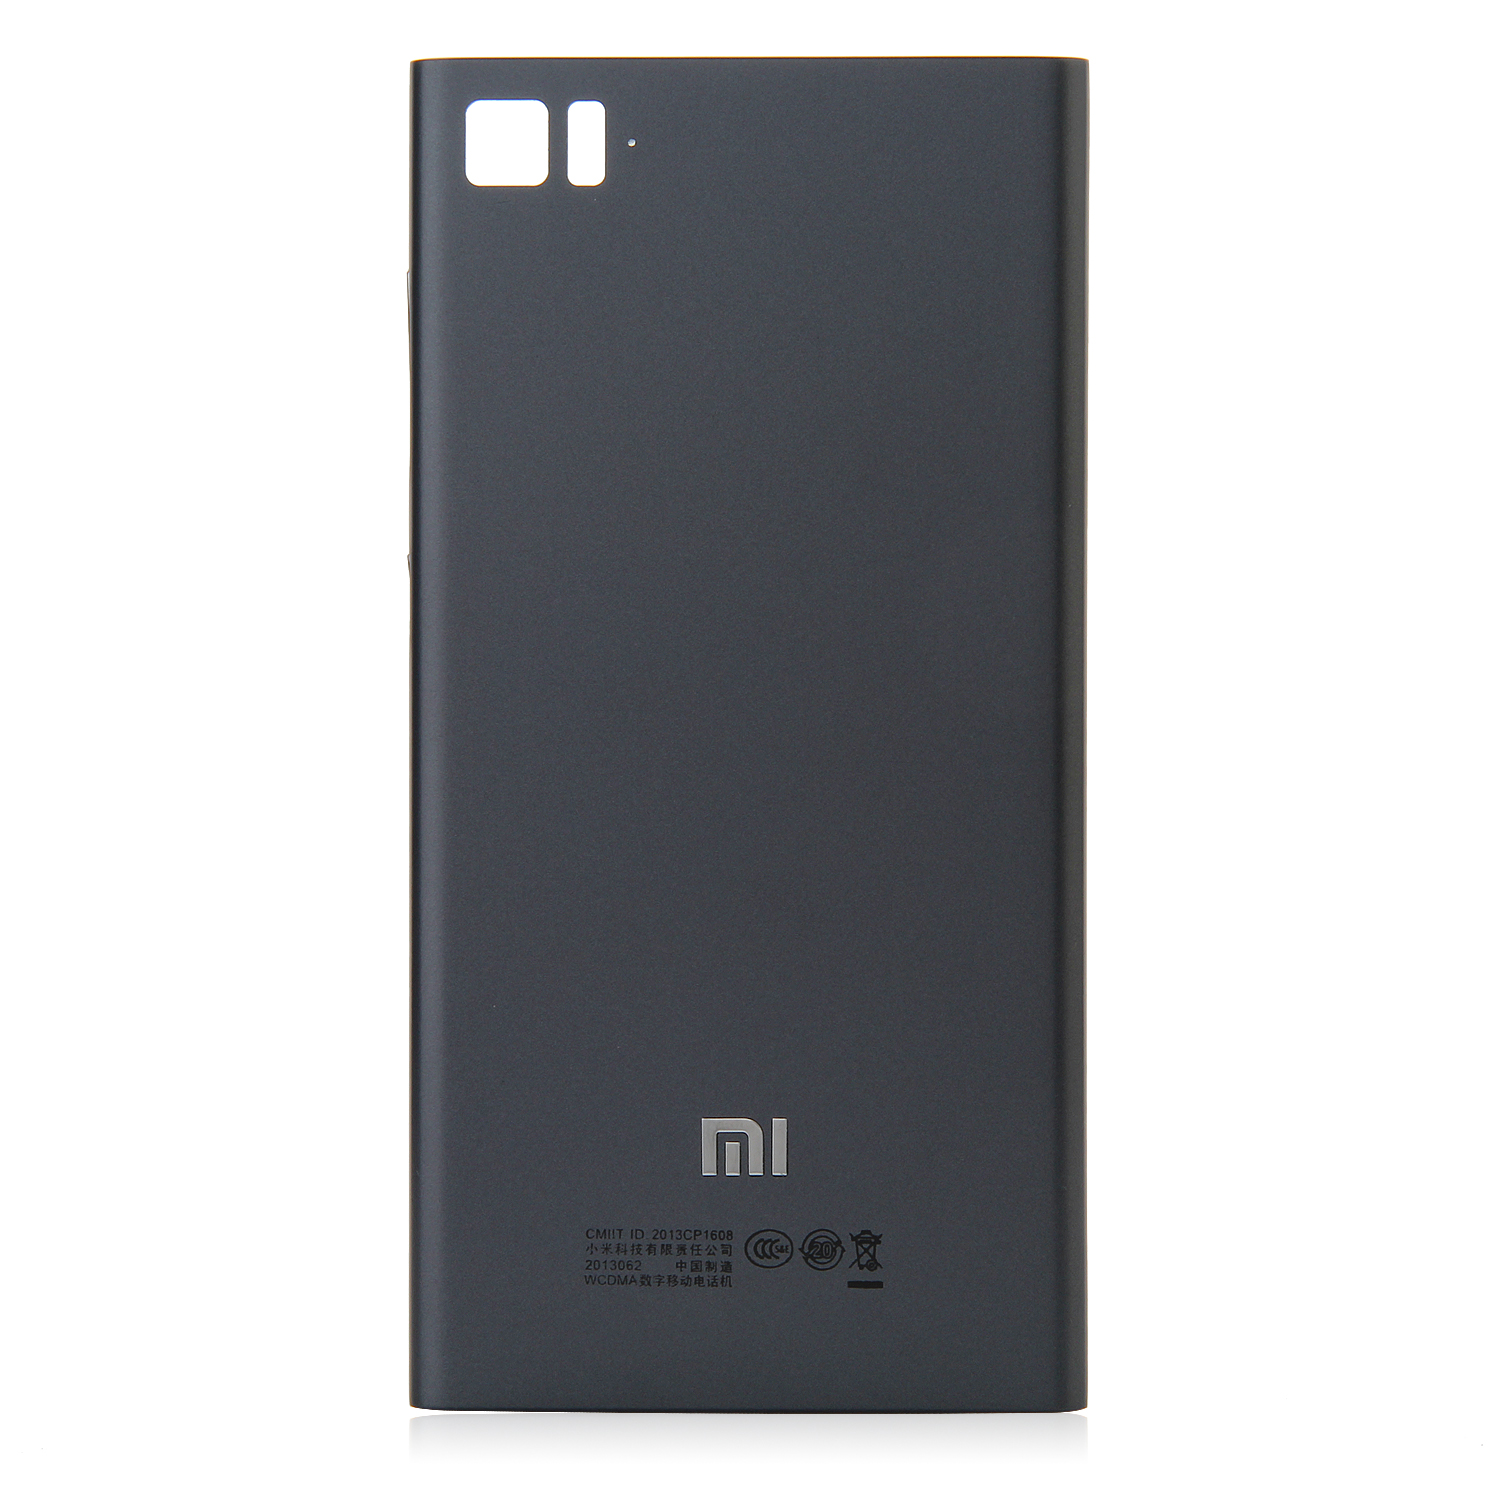 High Quality Replacement Battery Cover Back Case for XIAOMI MI3 Smartphone Silver Black